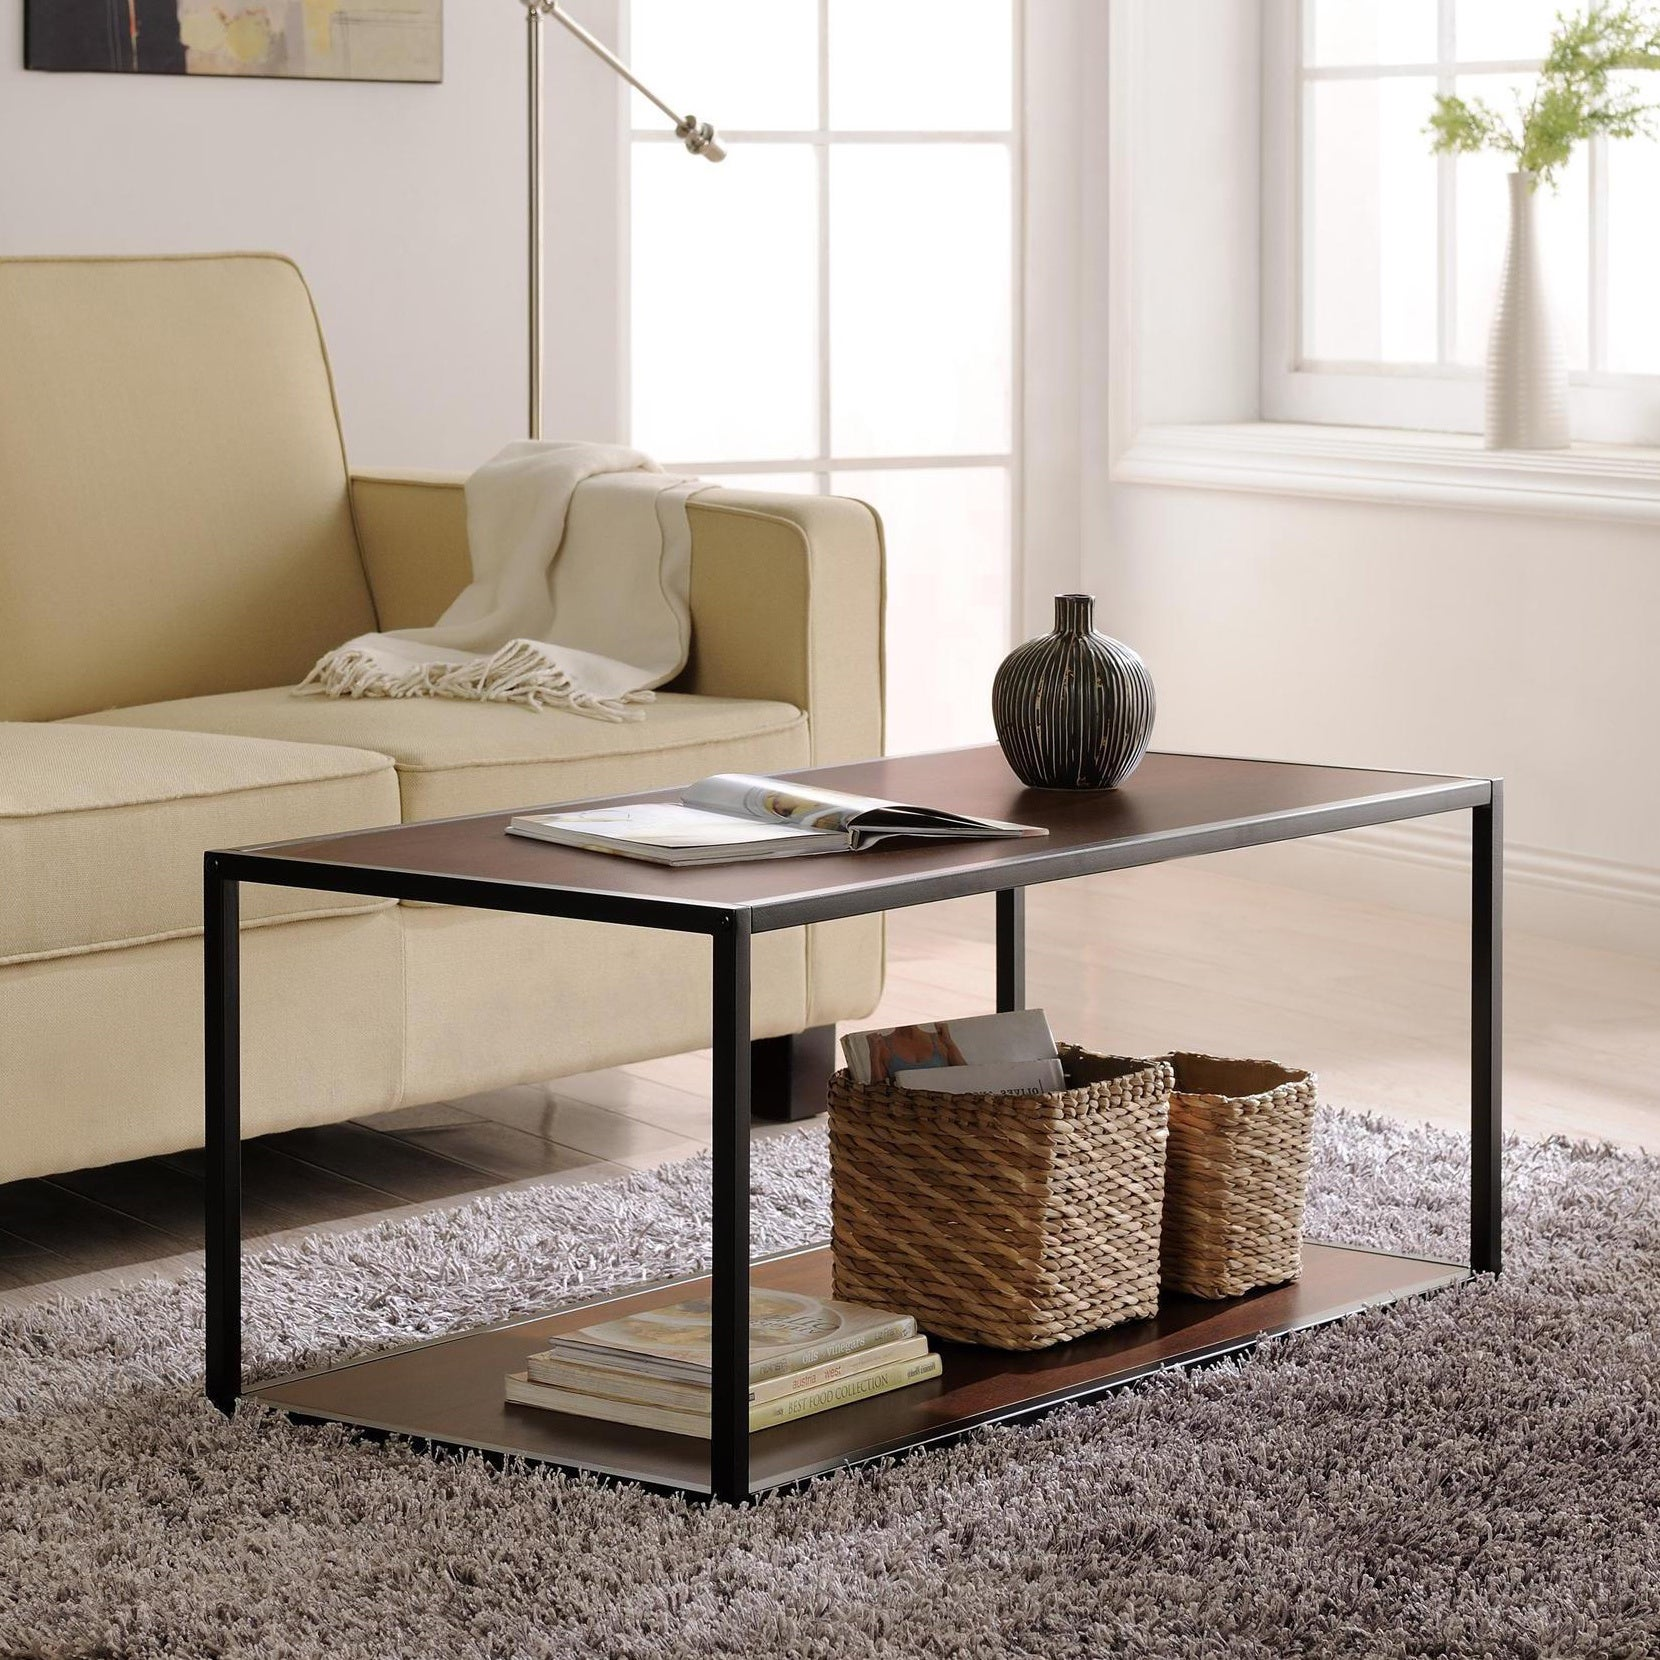 Wicker Park Haddon Metal Frame Coffee Table - Free Shipping On ...